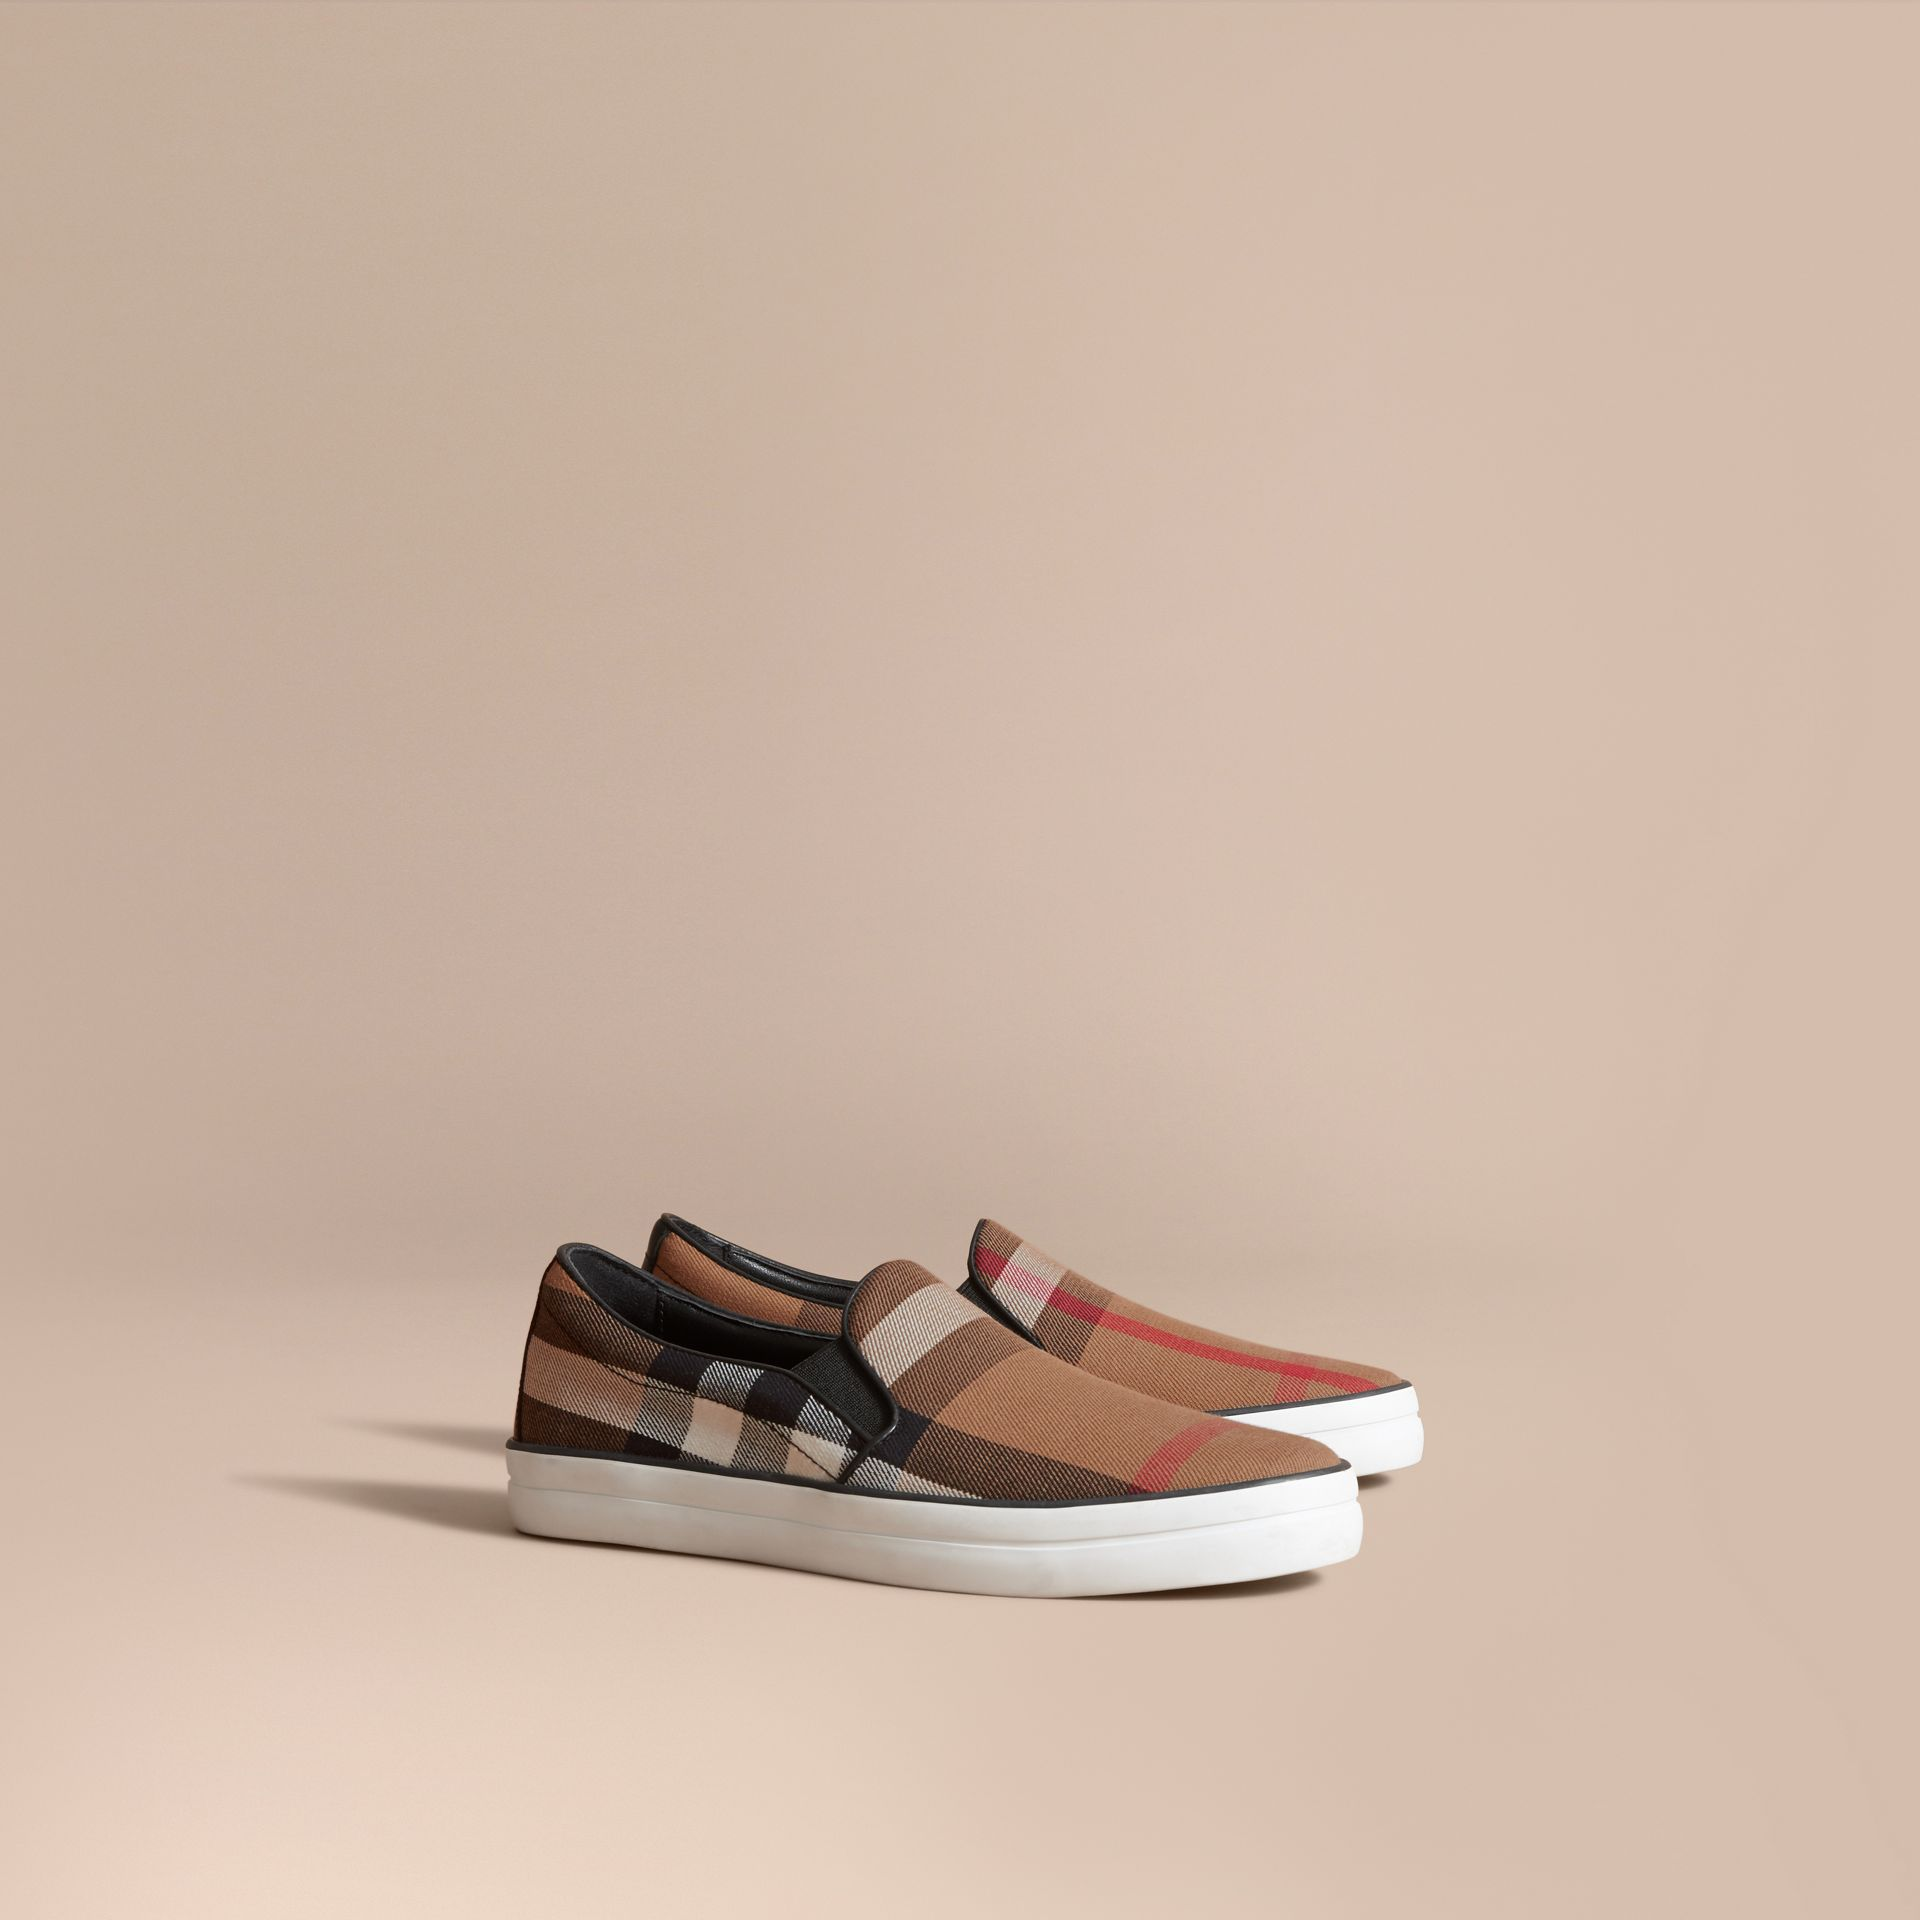 House Check and Leather Slip-on Sneakers in Classic - Women | Burberry - gallery image 0